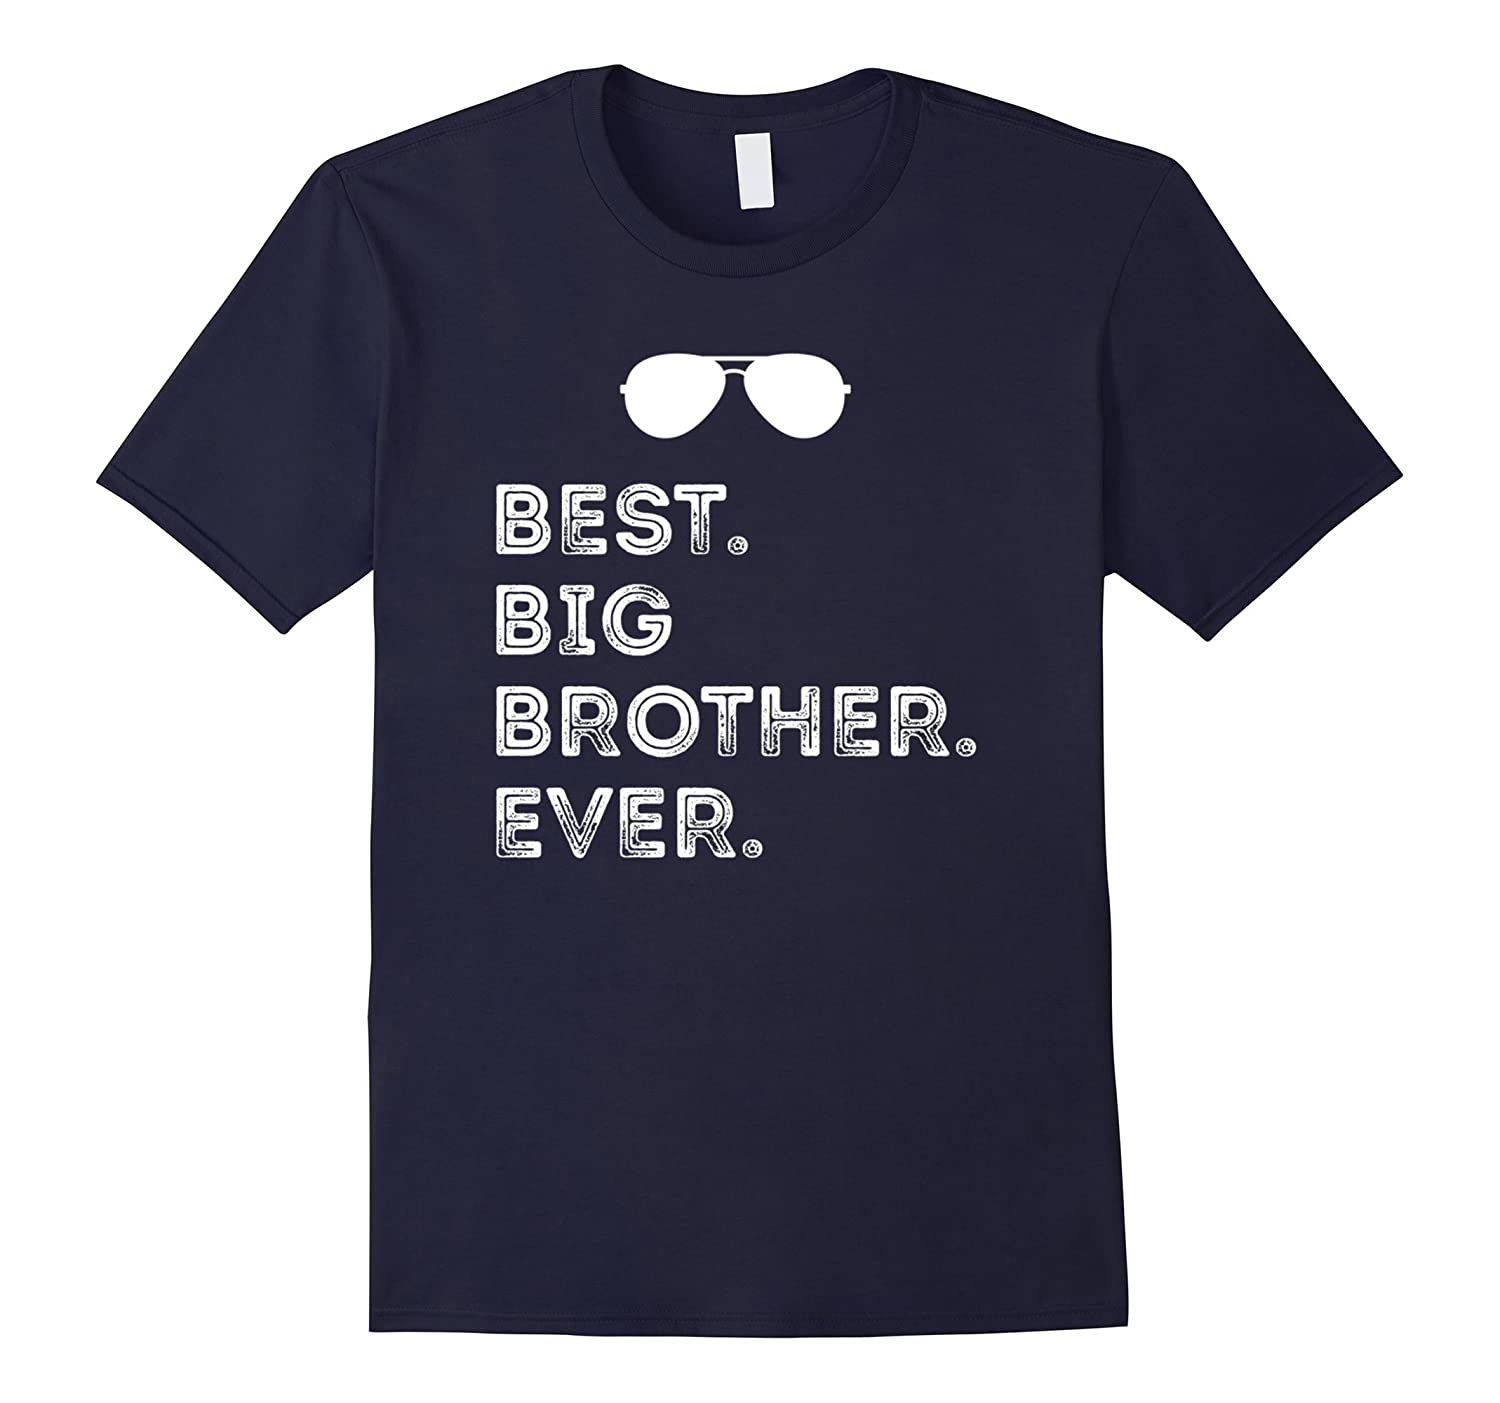 Best Big Brother Ever Toddler Shirt Cool Big Brother Gift.-Art